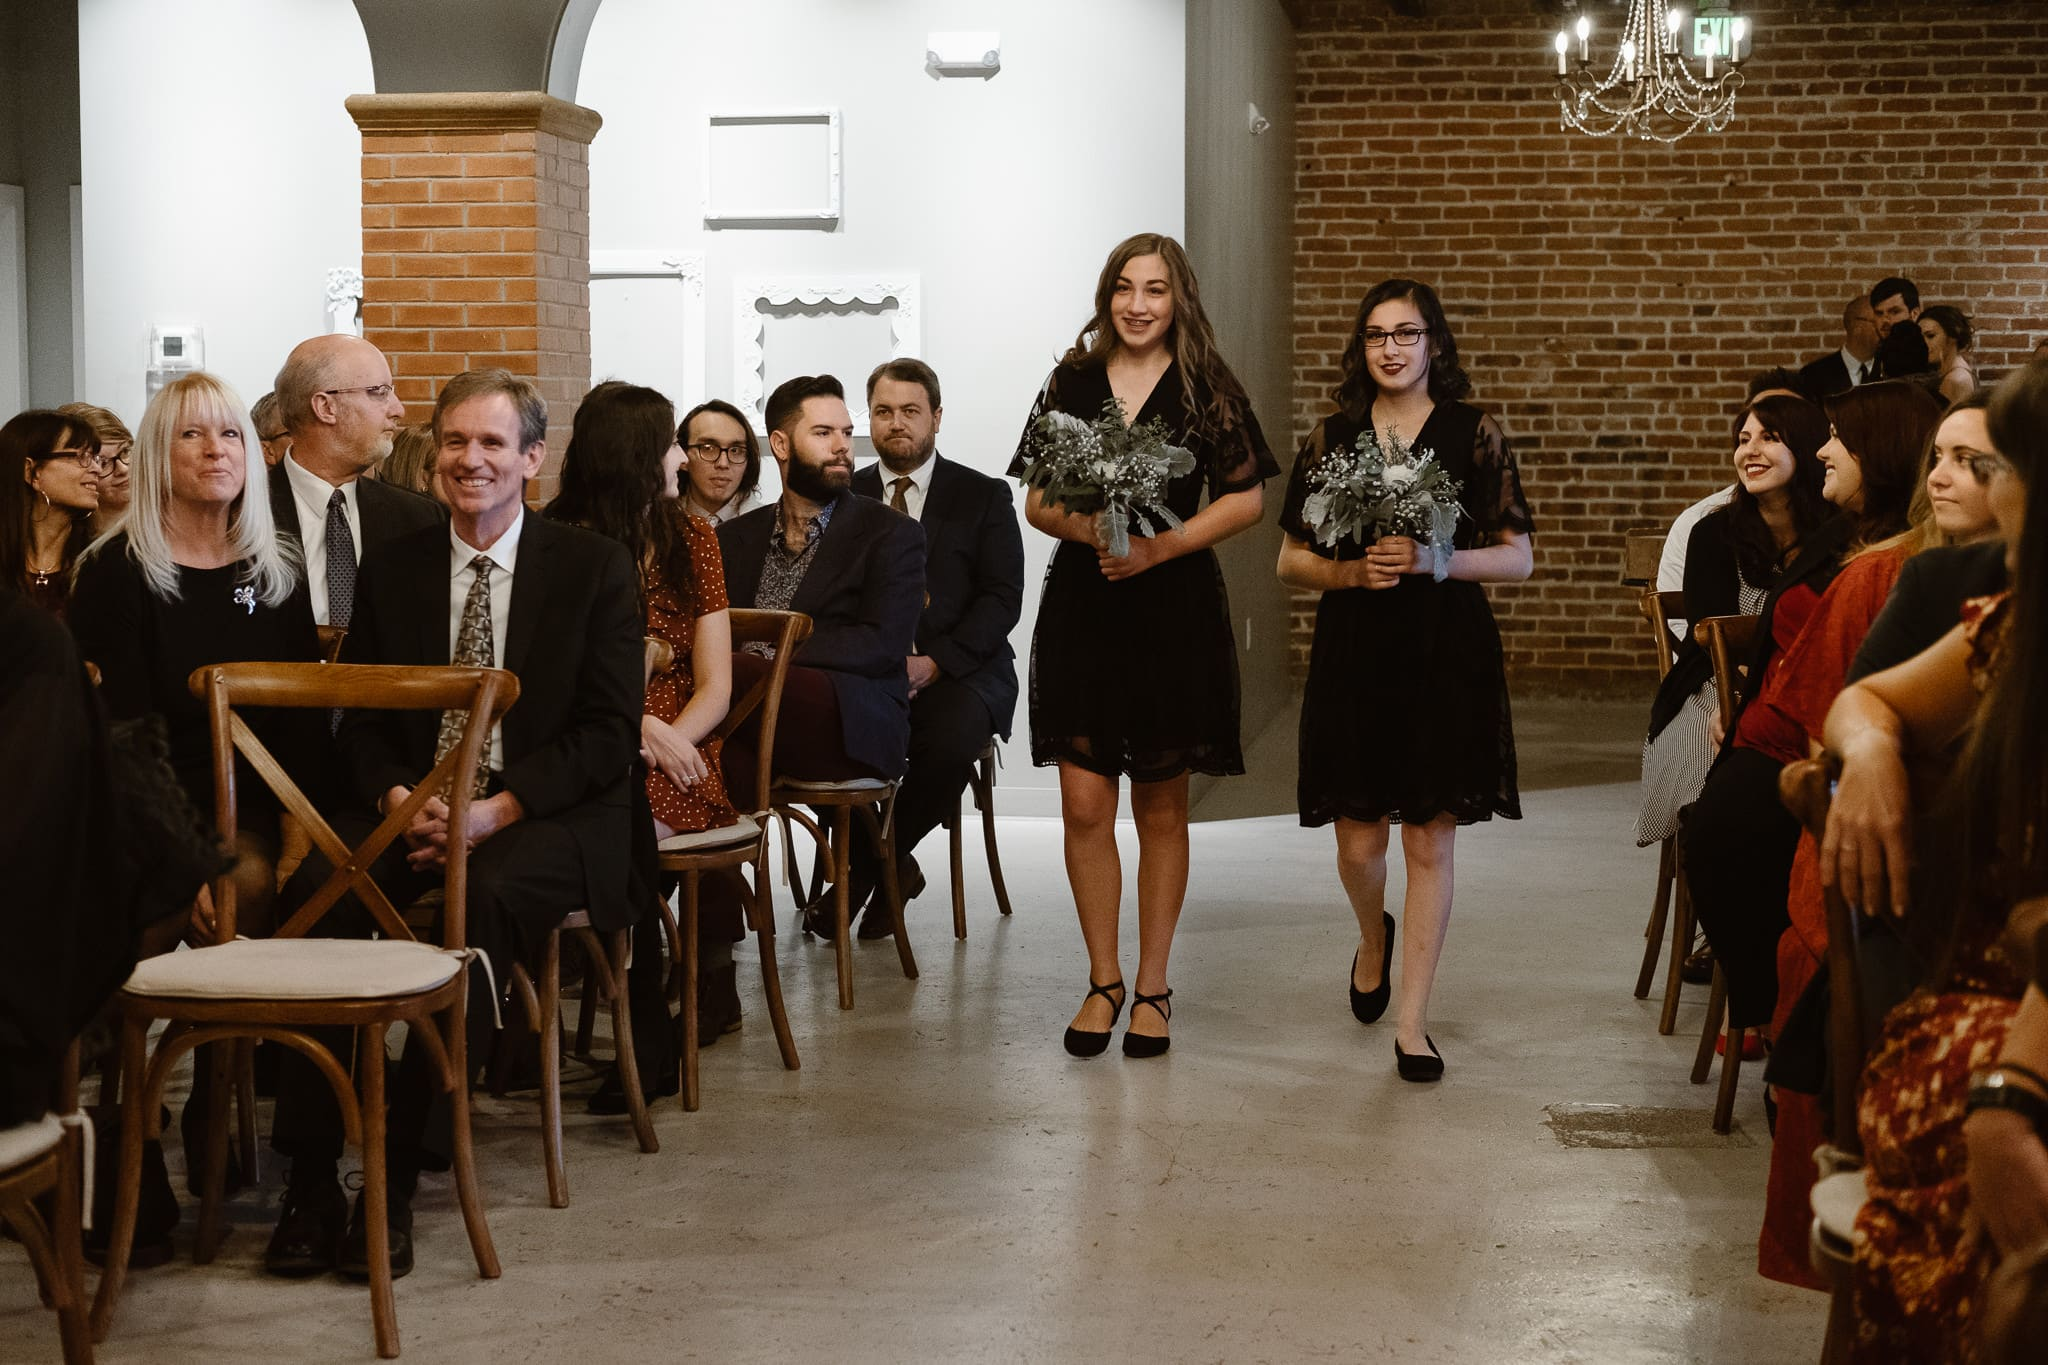 St Vrain Wedding Photographer | Longmont Wedding Photographer | Colorado Winter Wedding Photographer, Colorado industrial chic wedding ceremony, wedding processional